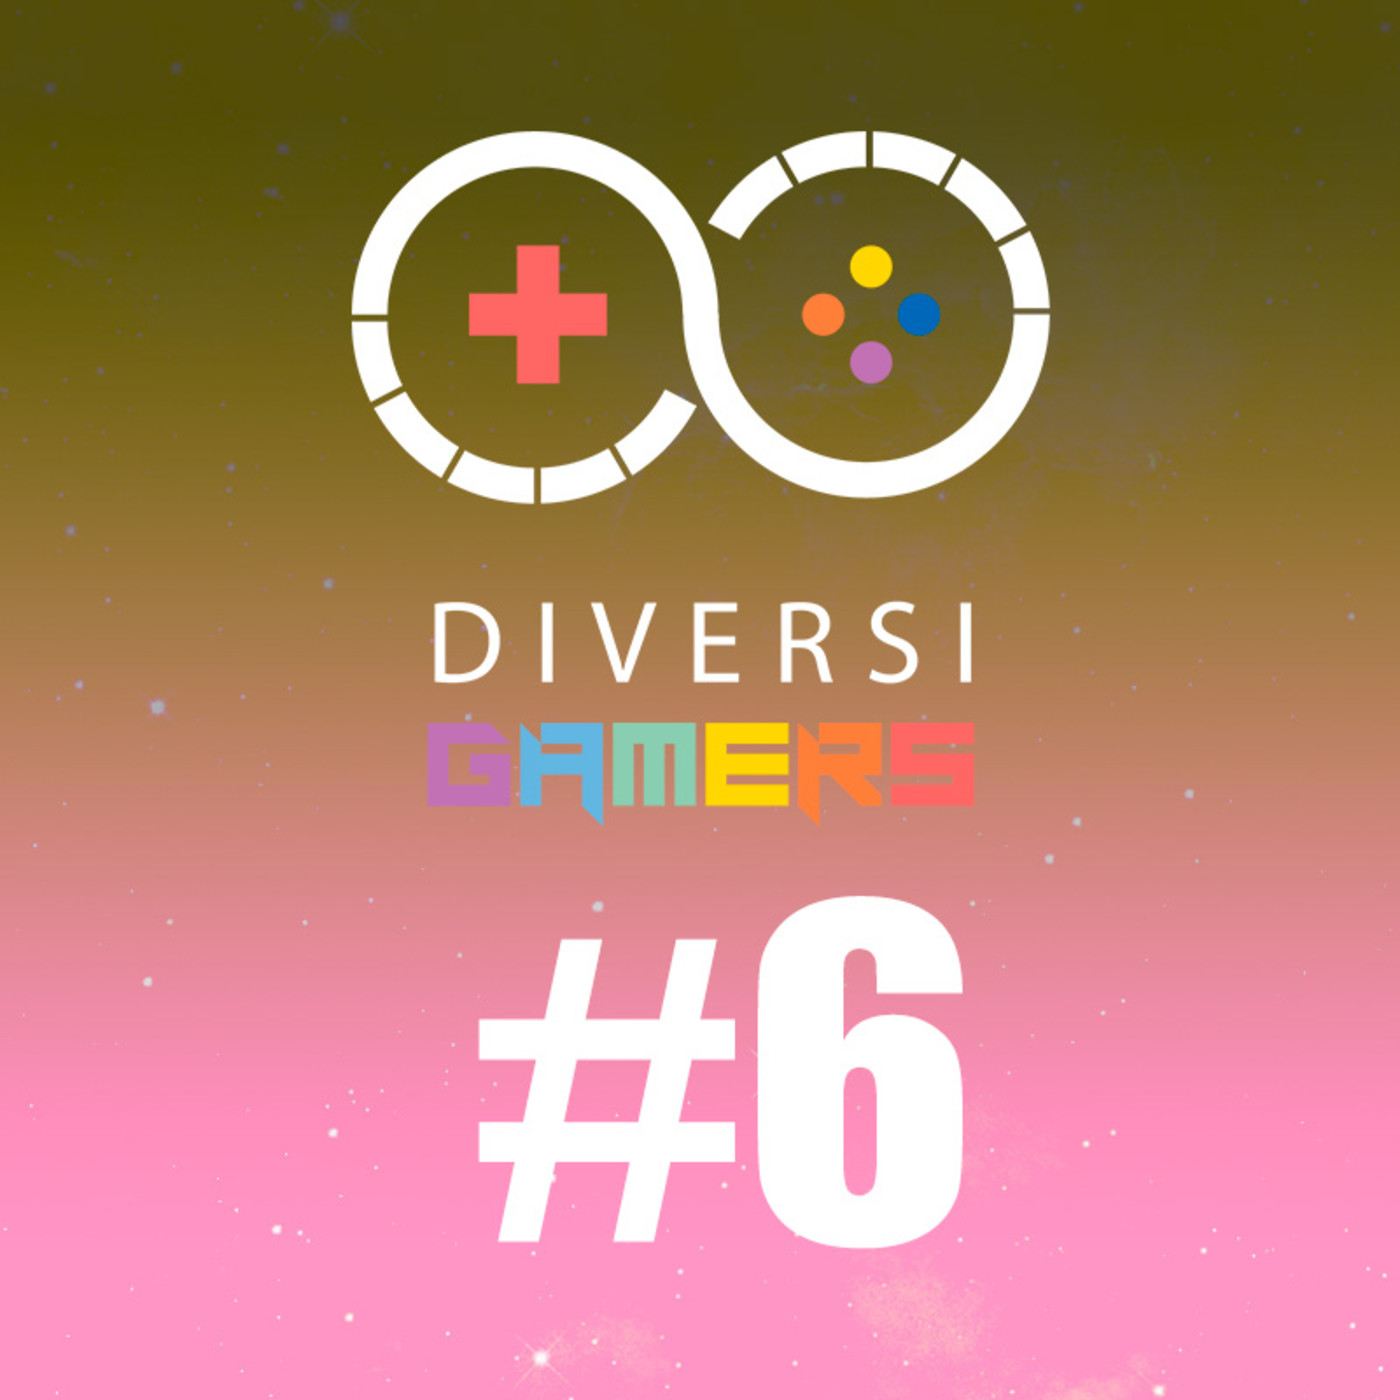 DiversiPodcast # 6 - ¿Volverte gay? Really?